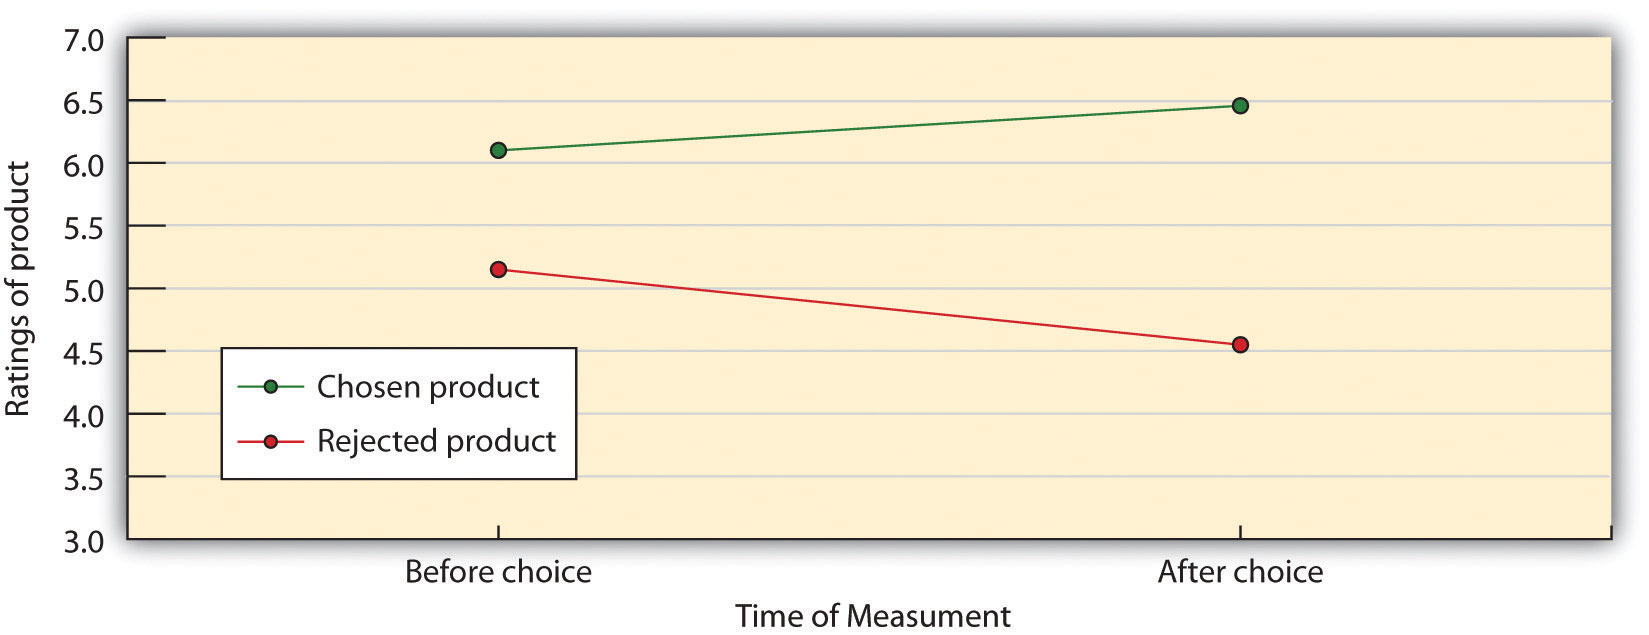 As predicted by the desire to reduce postdecisional dissonance, participants increased the perceived desirability of a product they had chosen and decreased the perceived desirability of a product they did not choose. Data are from Brehm (1956).